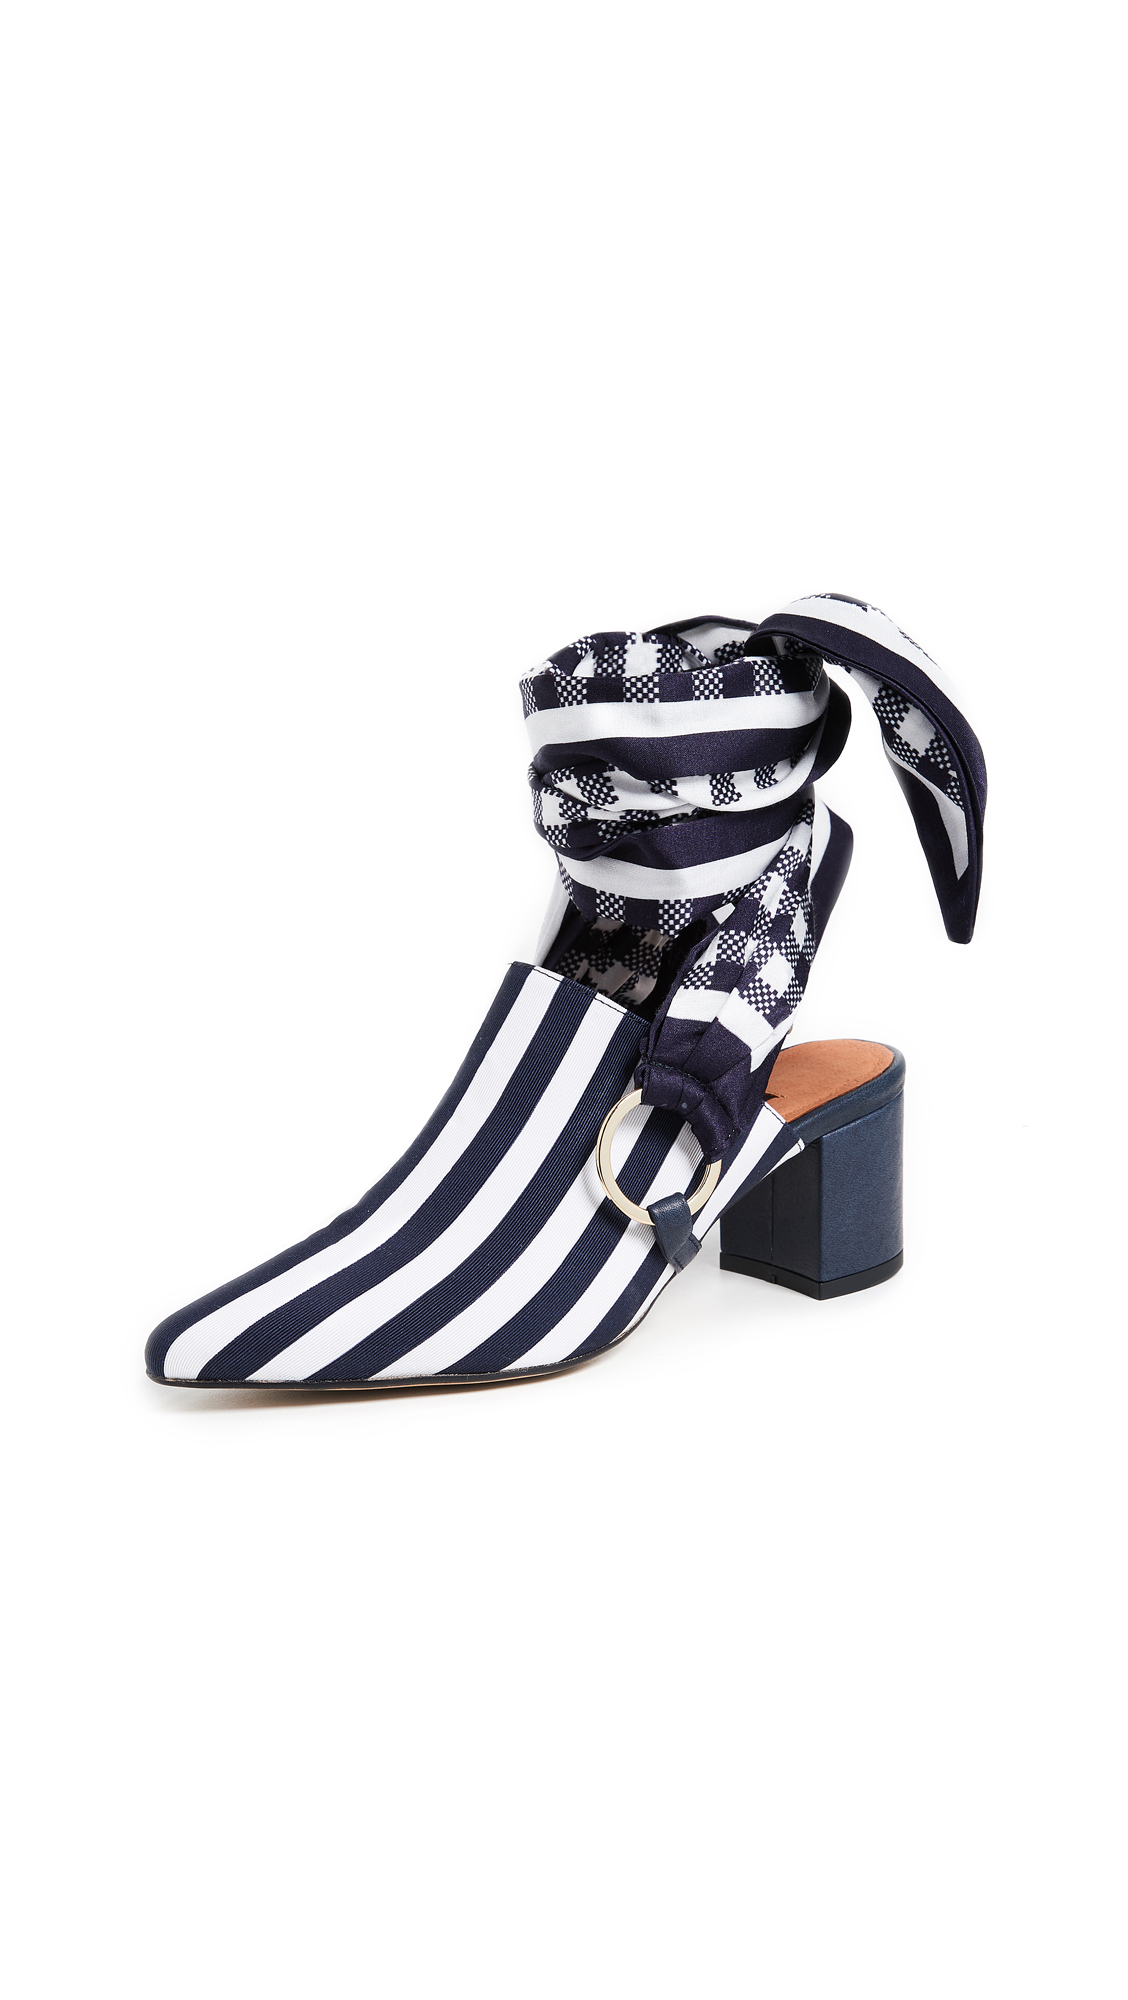 Mother of Pearl Courtney Mules - Navy/White